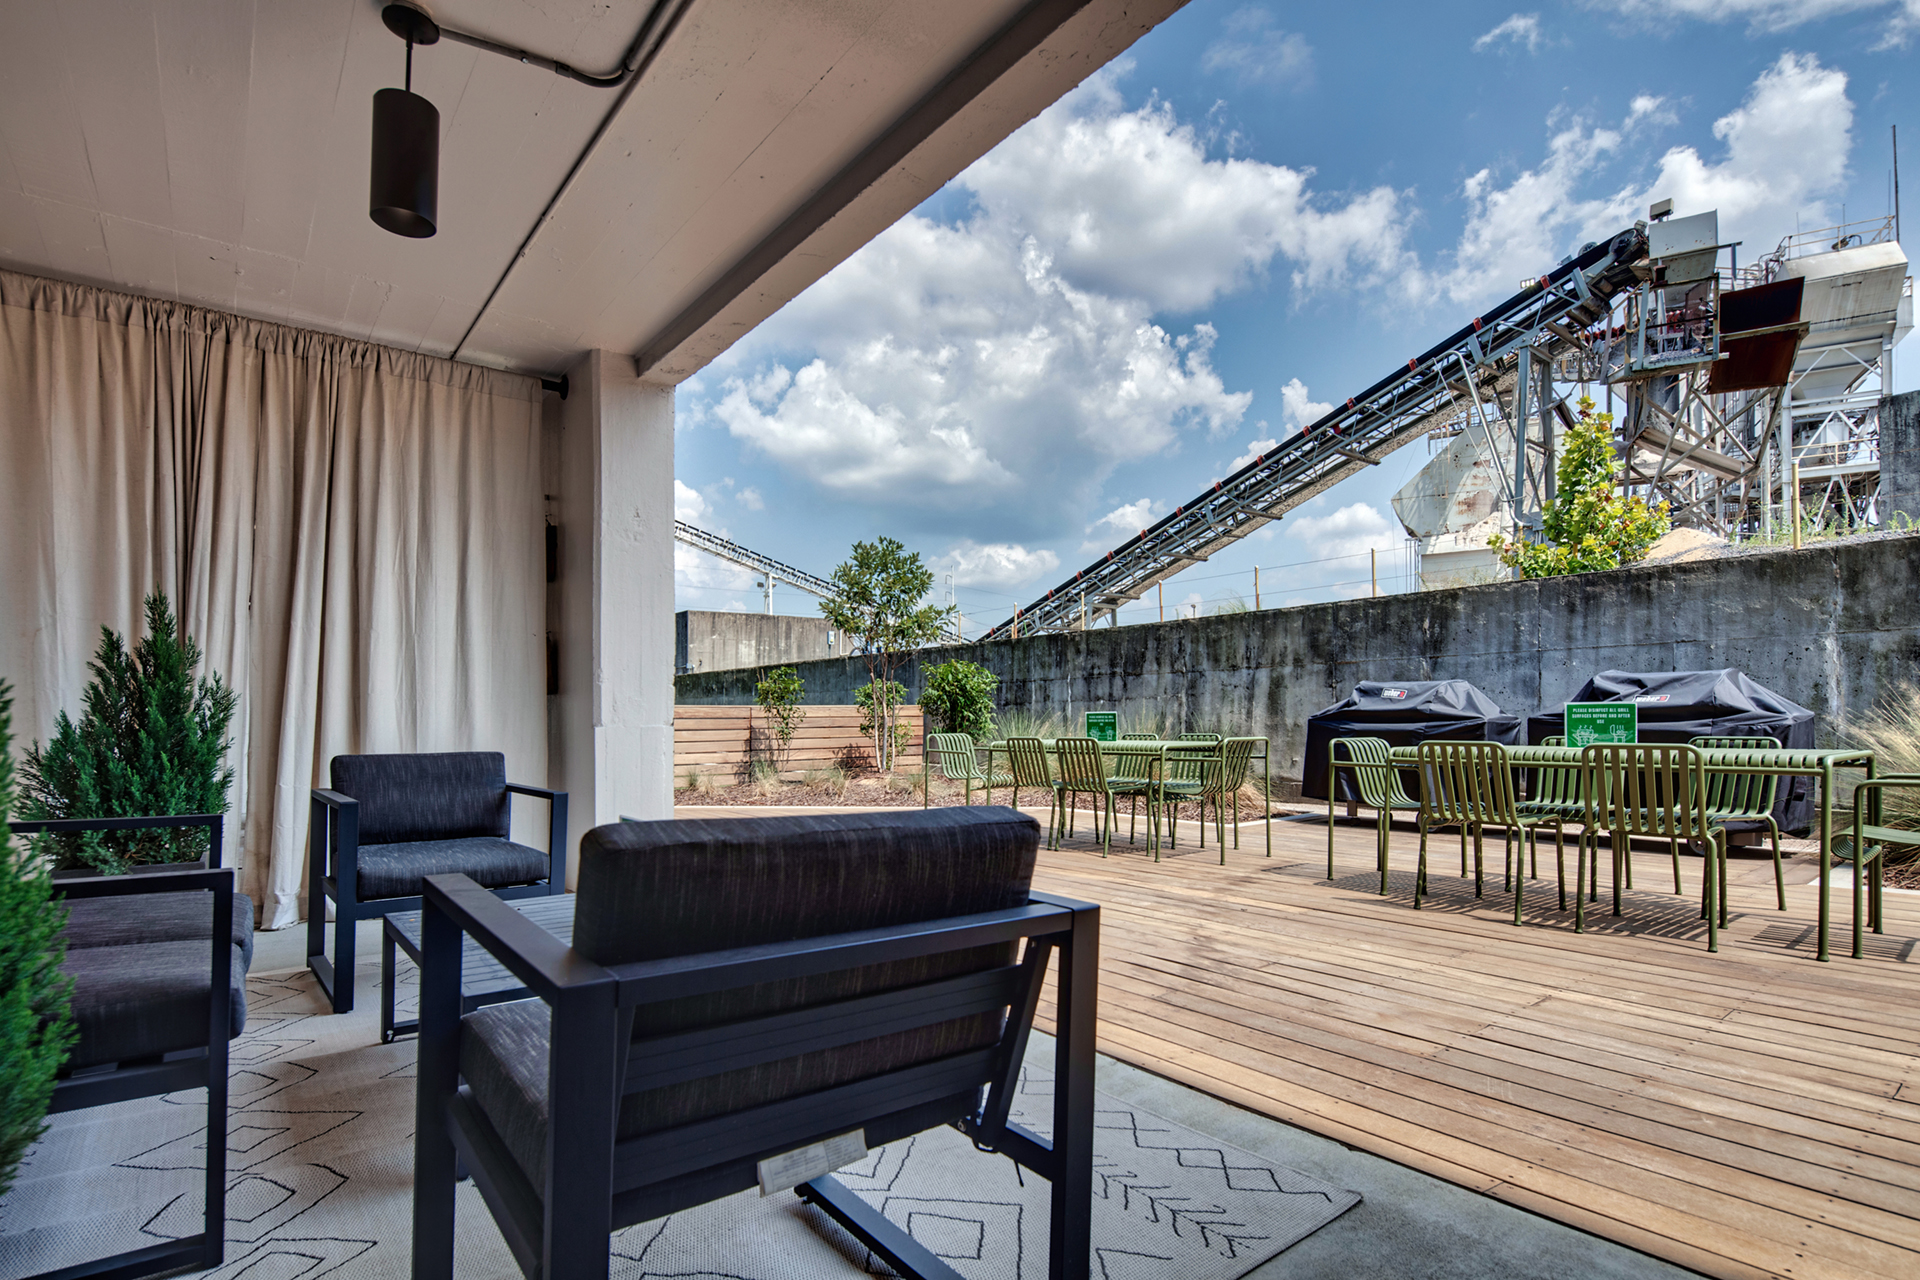 Outdoor patio with ample seating at The Denham Building loft apartments for rent in South Birmingham, AL